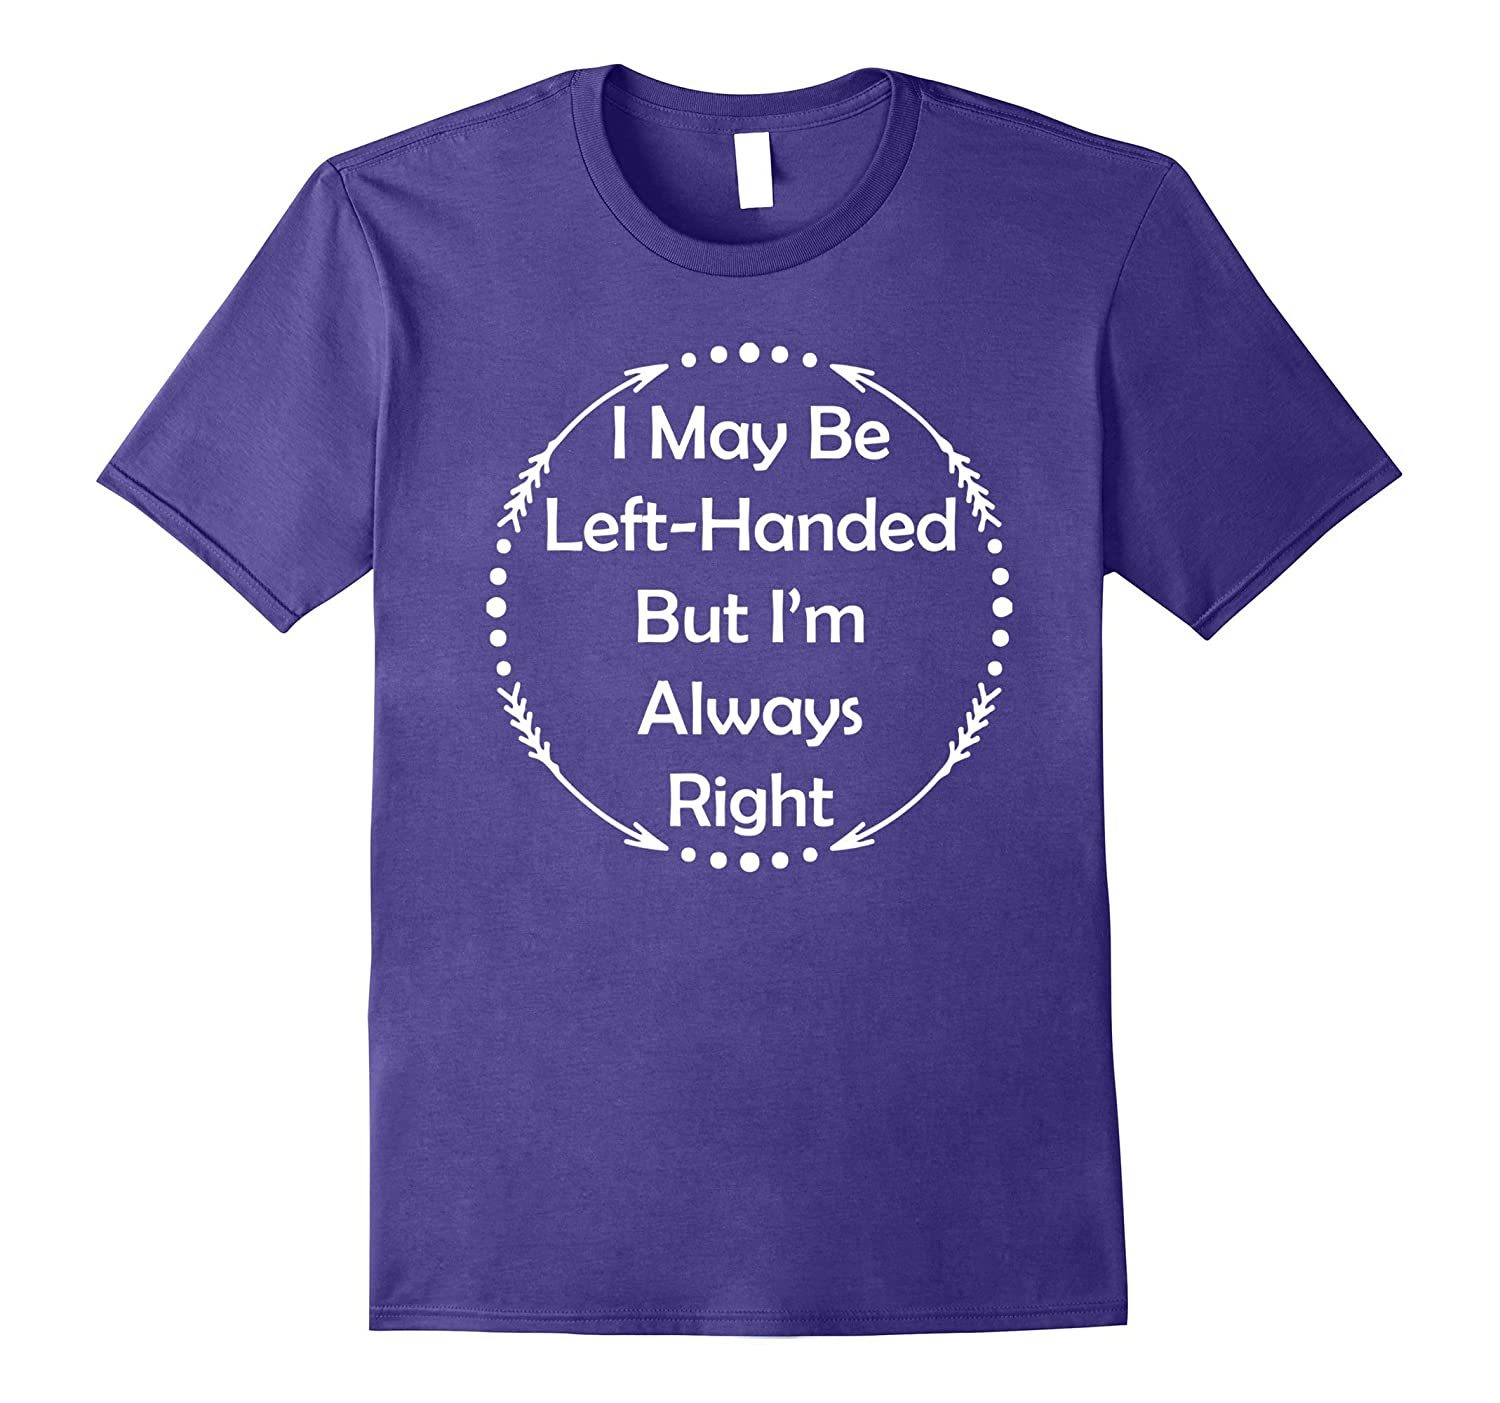 I May Be Left-Handed But I'm Always Right Funny T-Shirt-FL